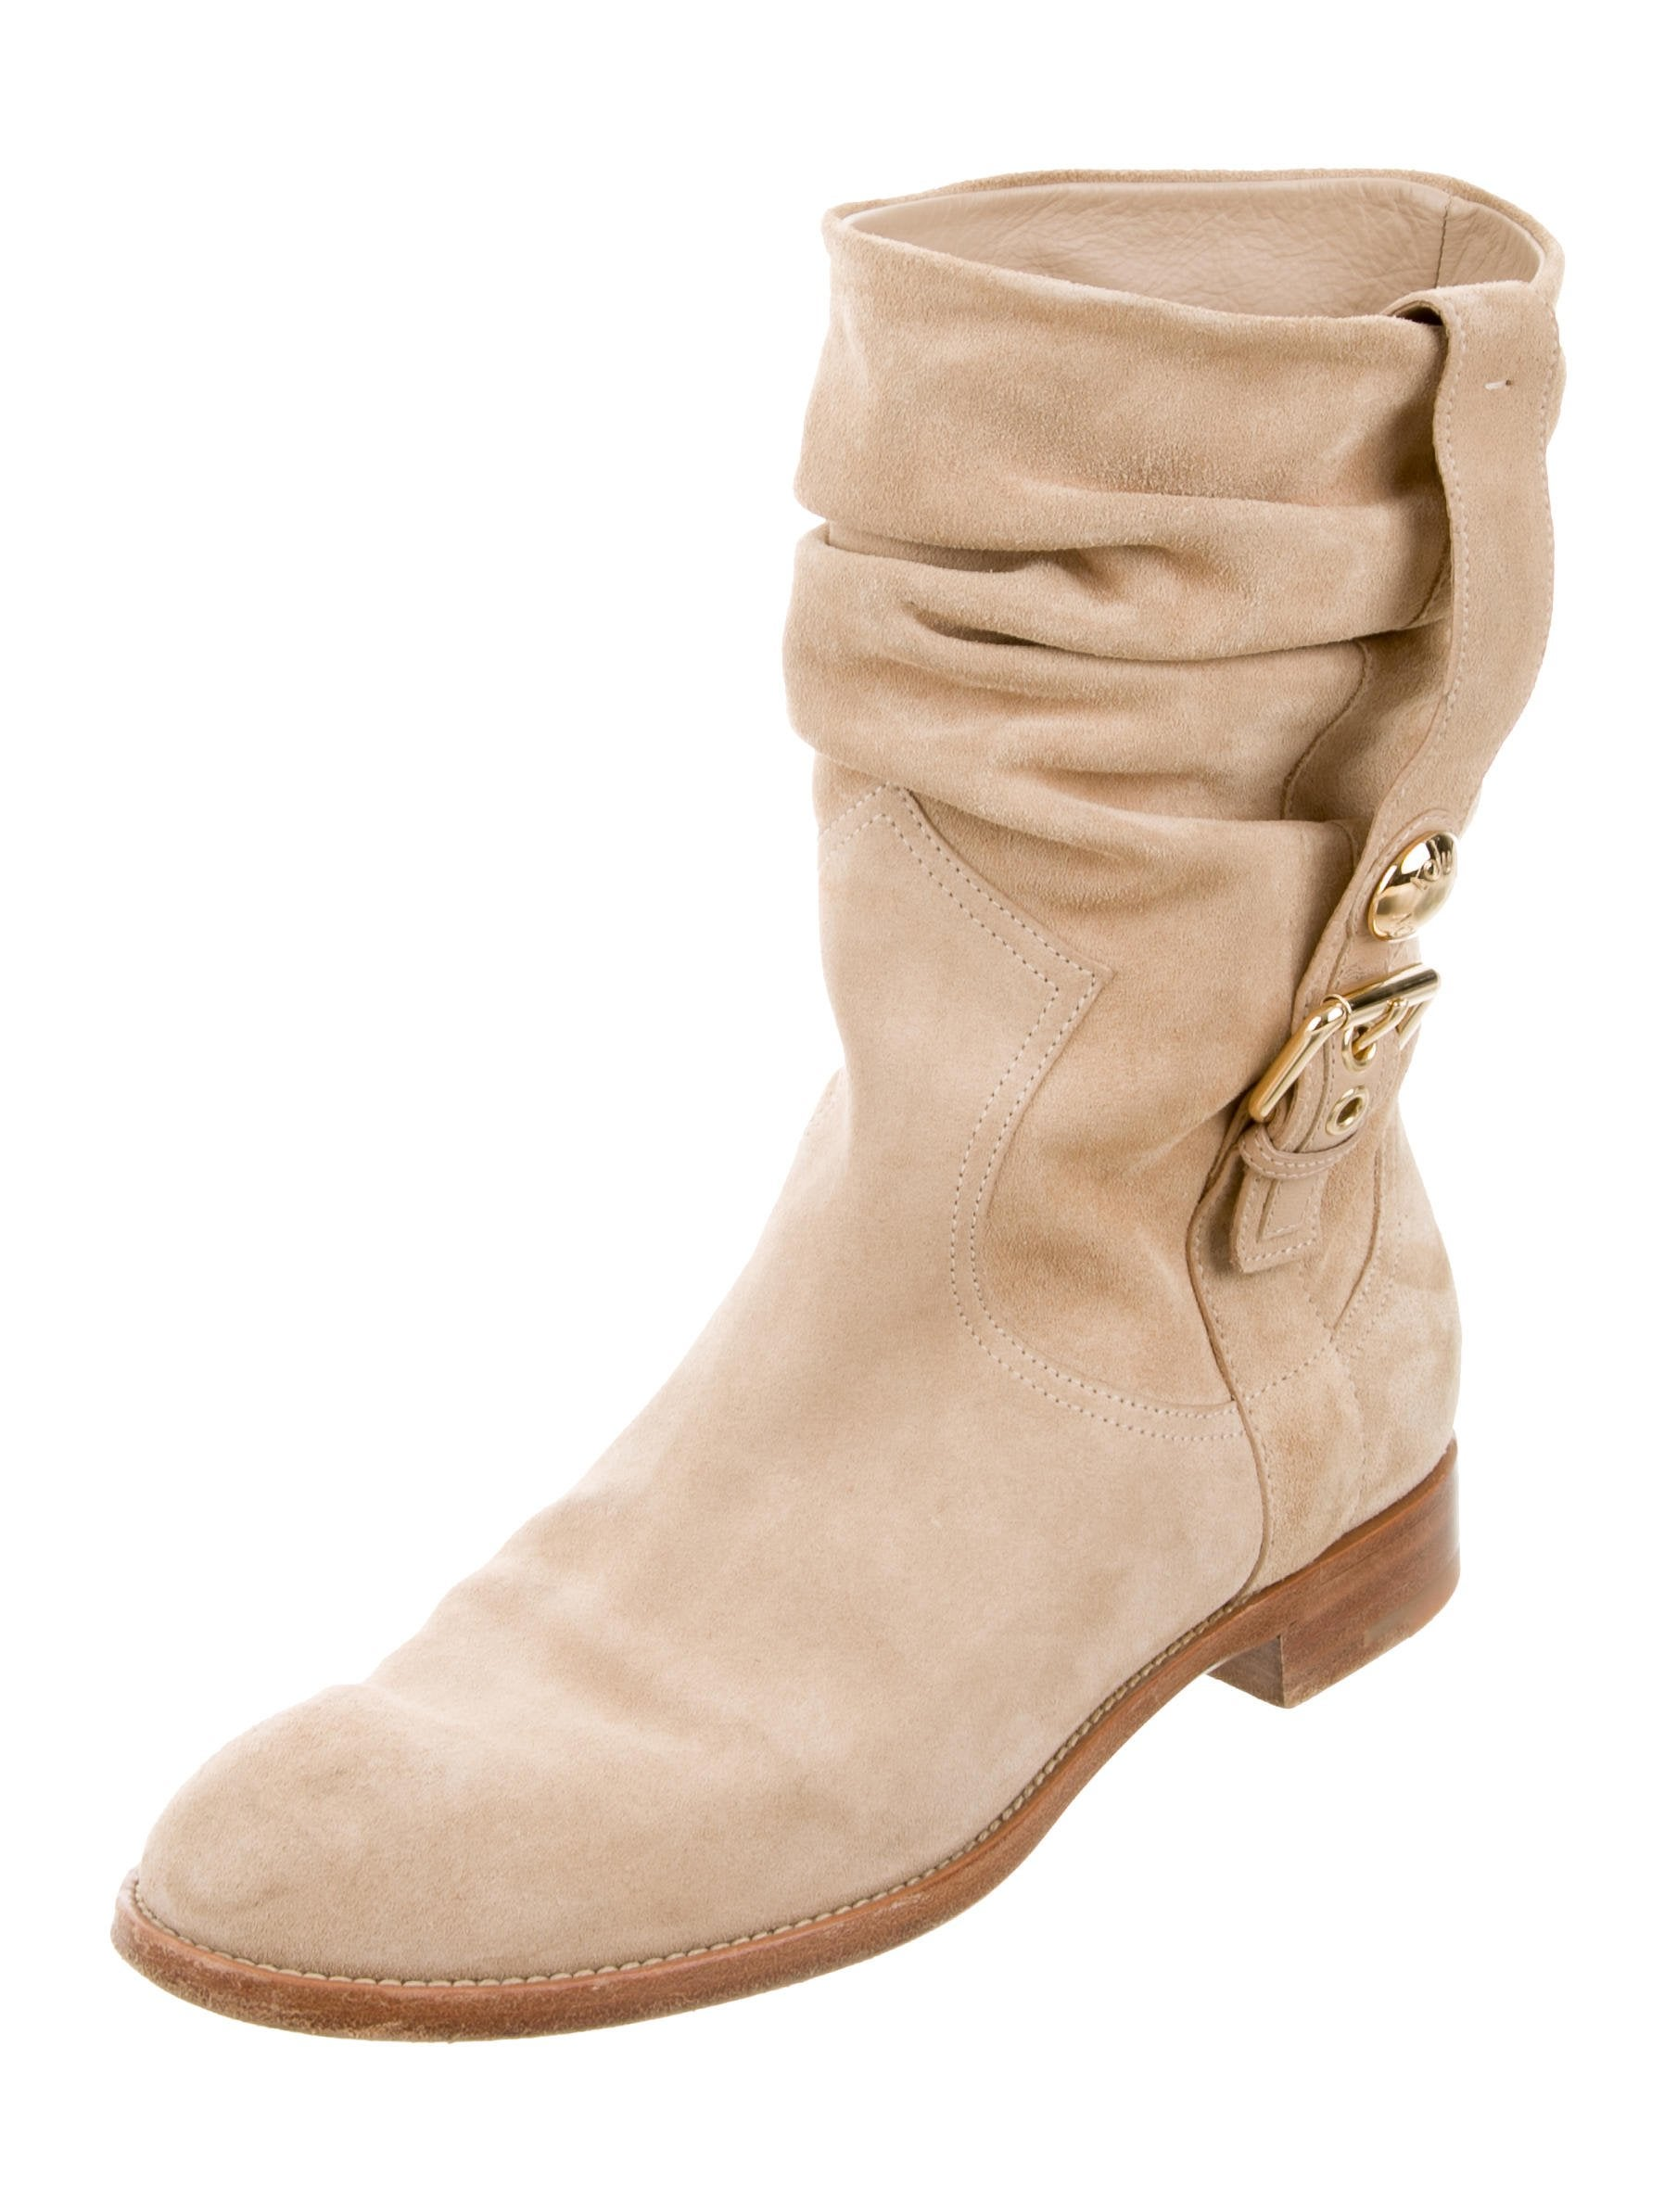 louis vuitton suede mid calf boots shoes lou133810